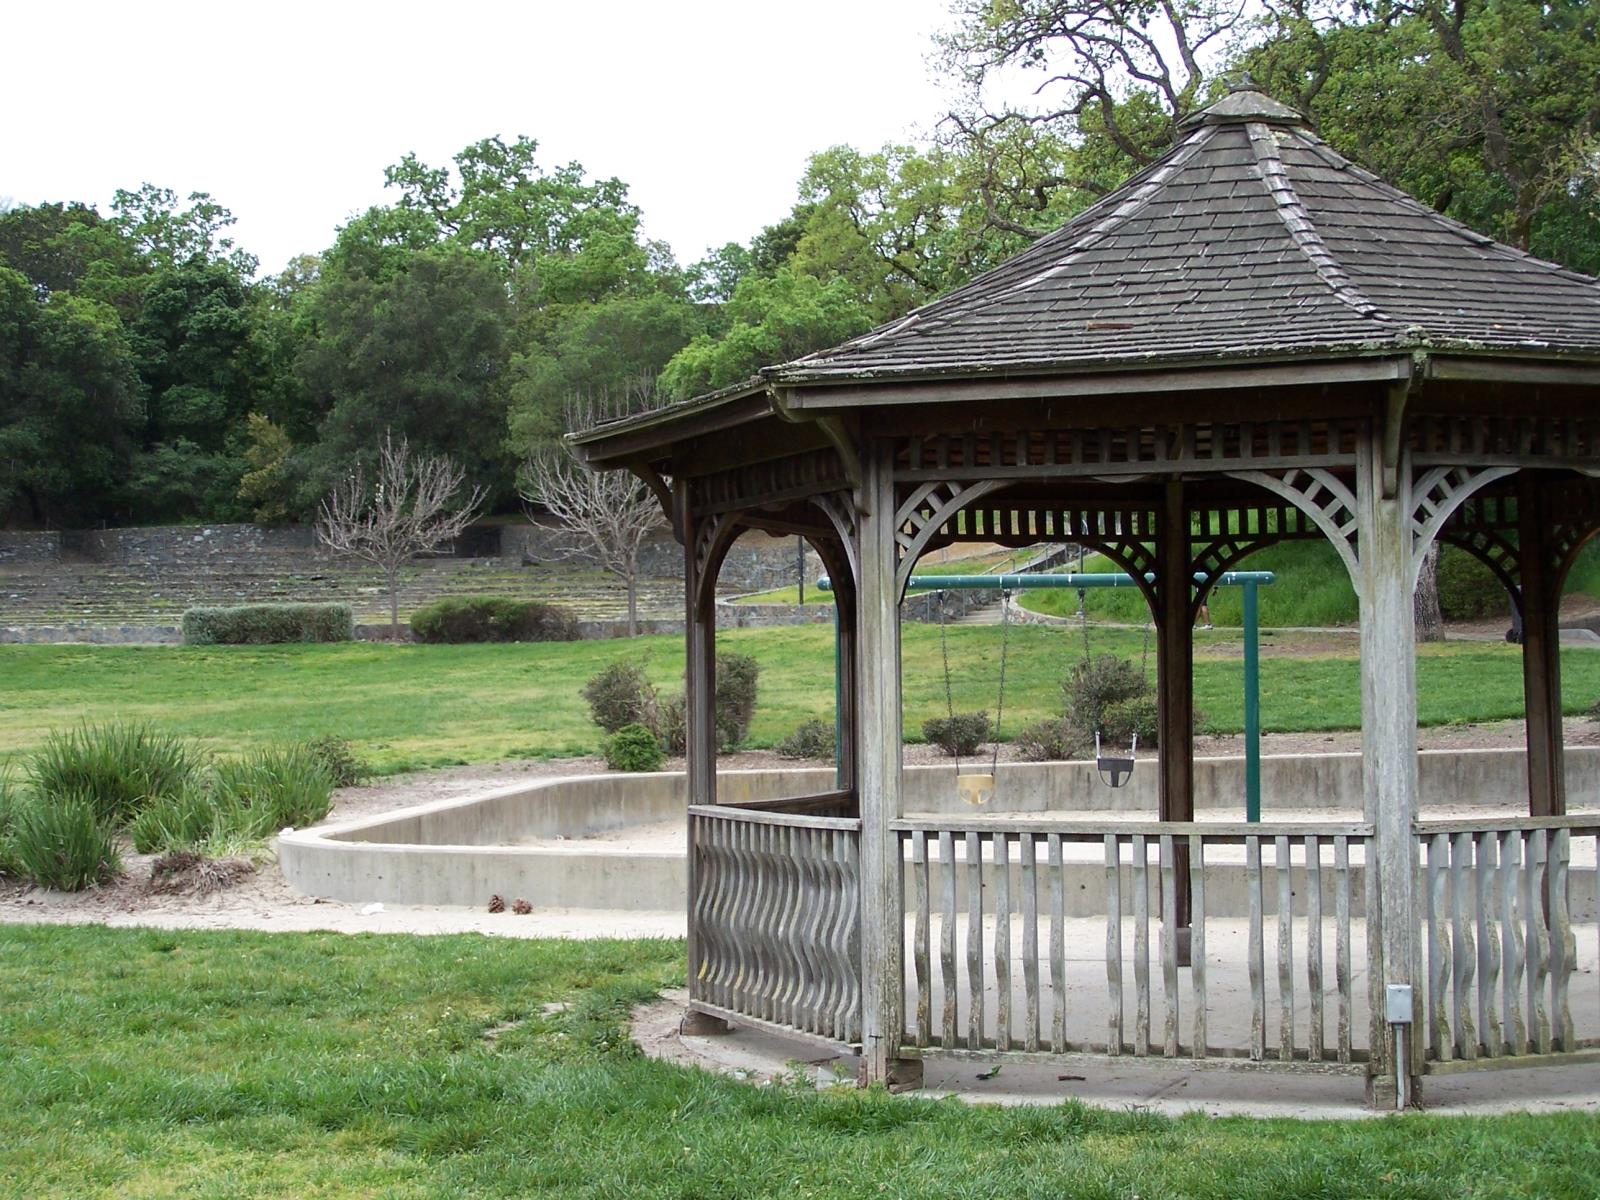 Picture of Hamilton Amphitheater Gazebo